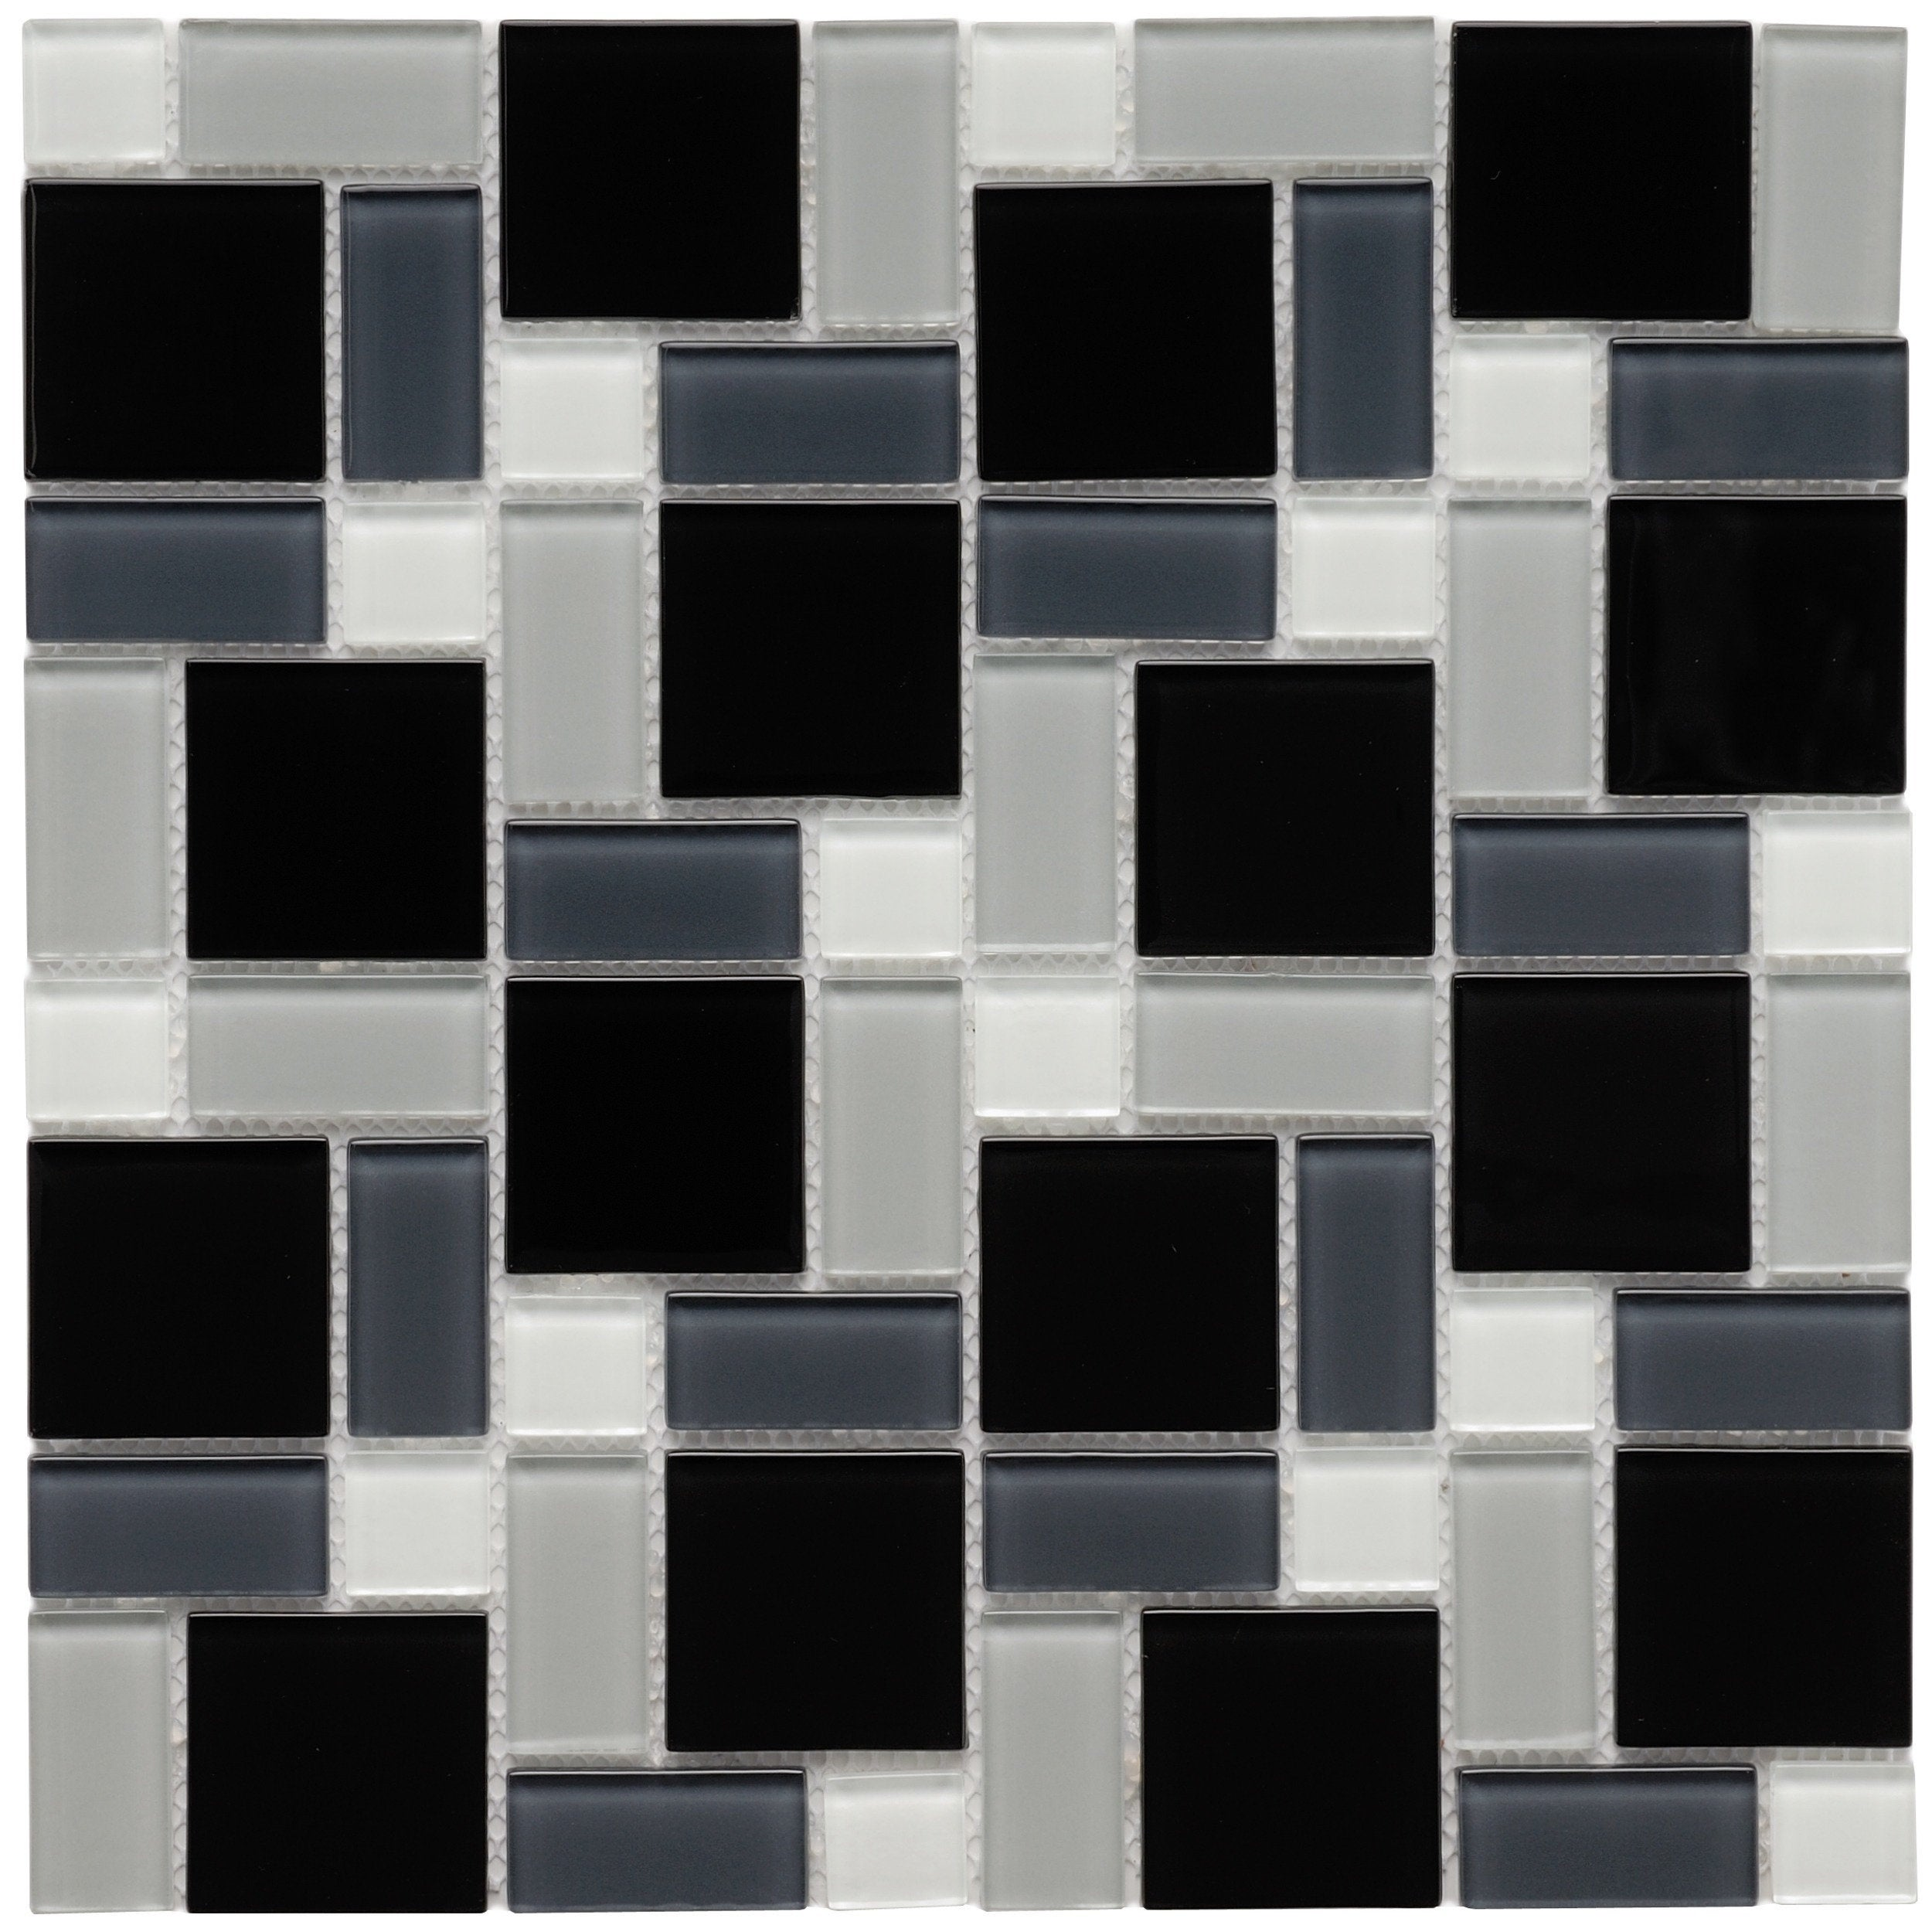 SomerTile 11 75x11 75 inch View Block Black and White Glass Mosaic